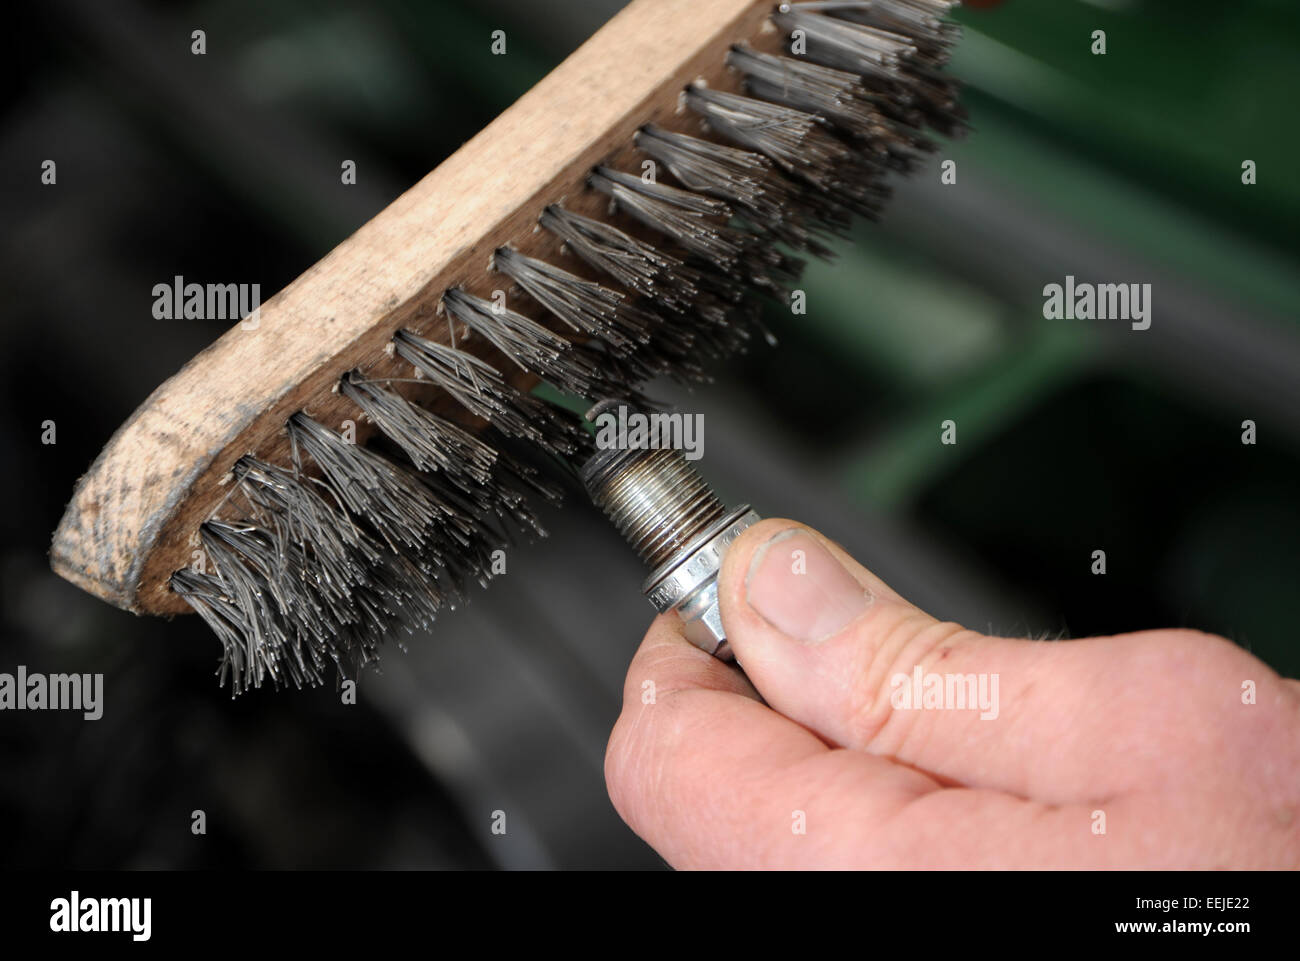 How To Clean Spark Plugs >> Cleaning A Car Engine Spark Plug With A Wire Brush Stock Photo